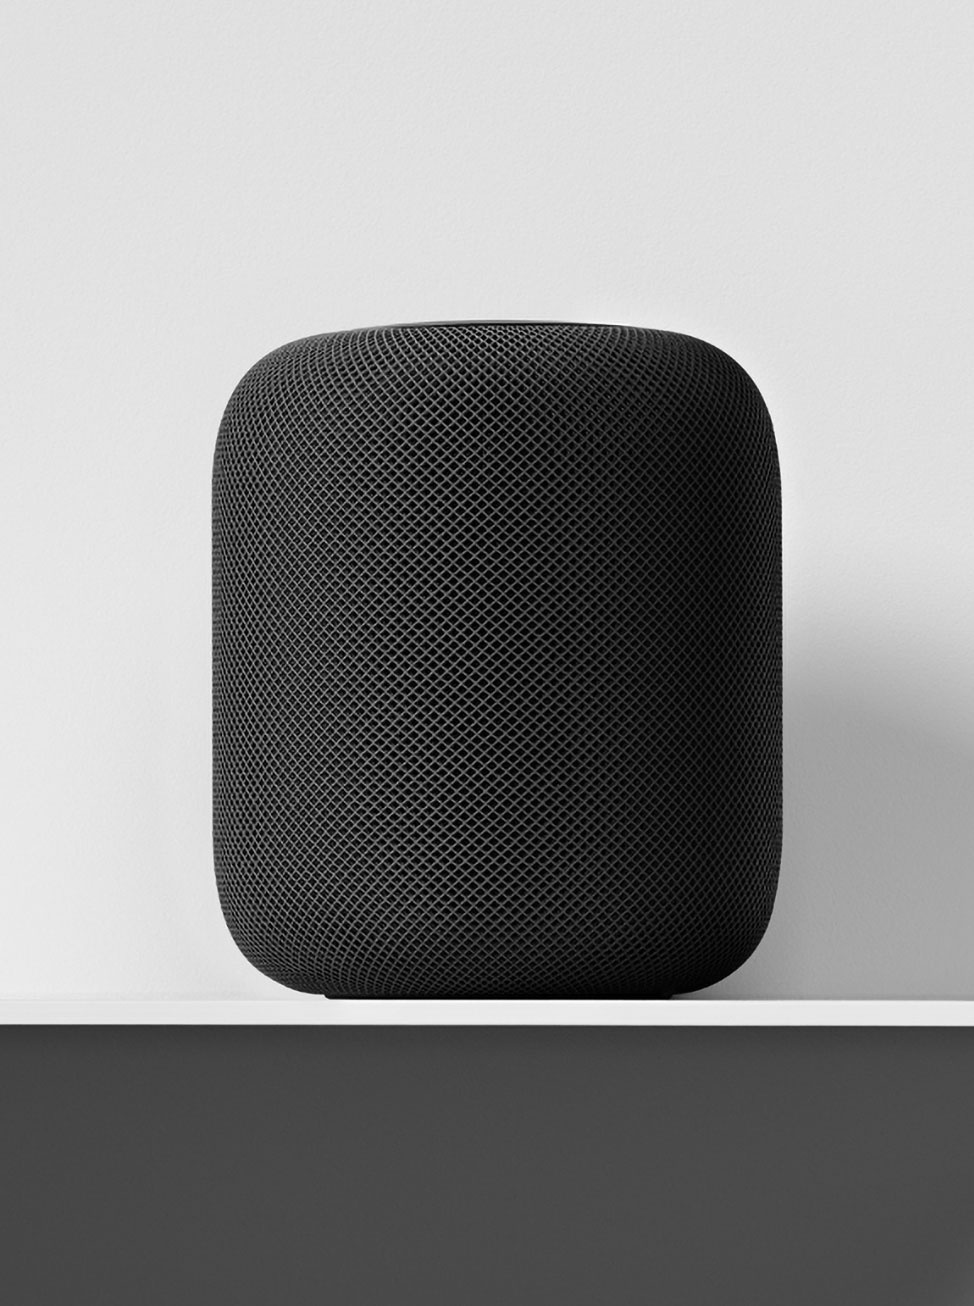 Apple HomePod smart speaker design